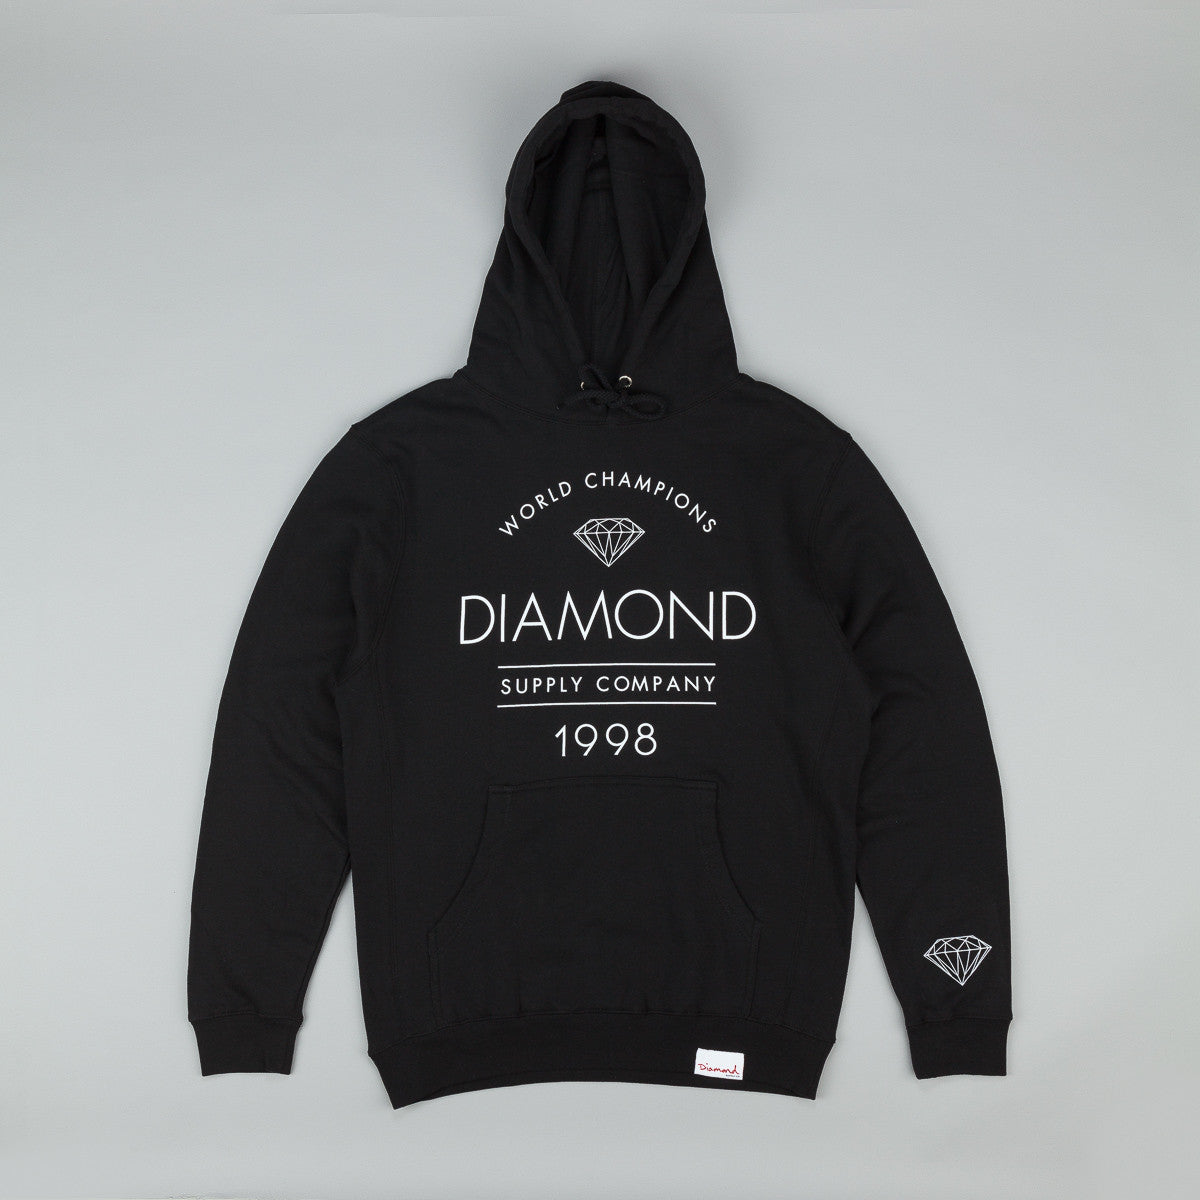 Diamond Craftsman Hooded Sweatshirt - Black